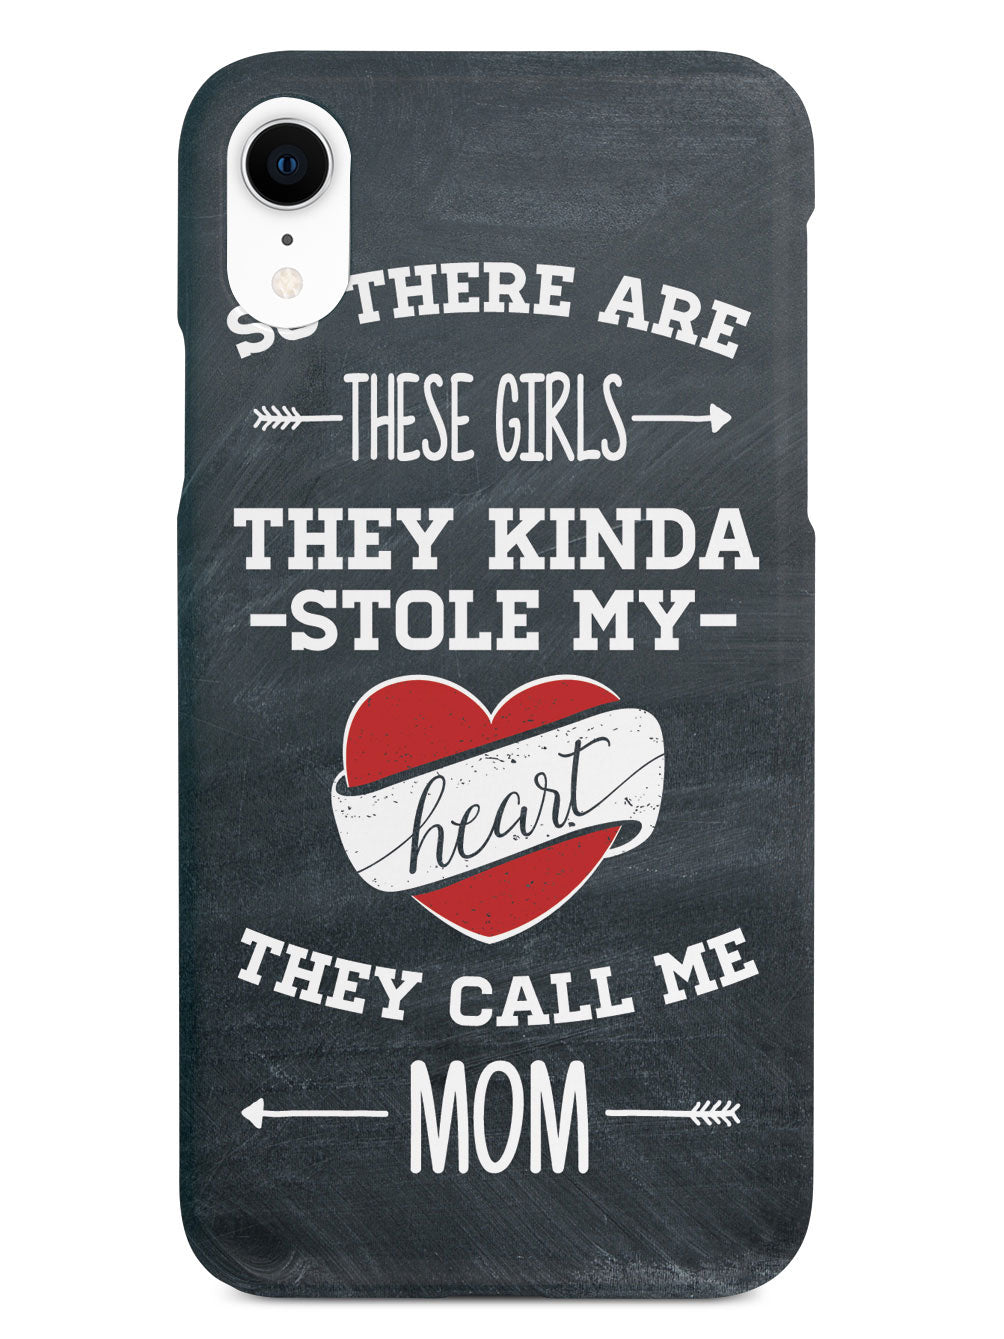 So There Are These Girls - Mom Case